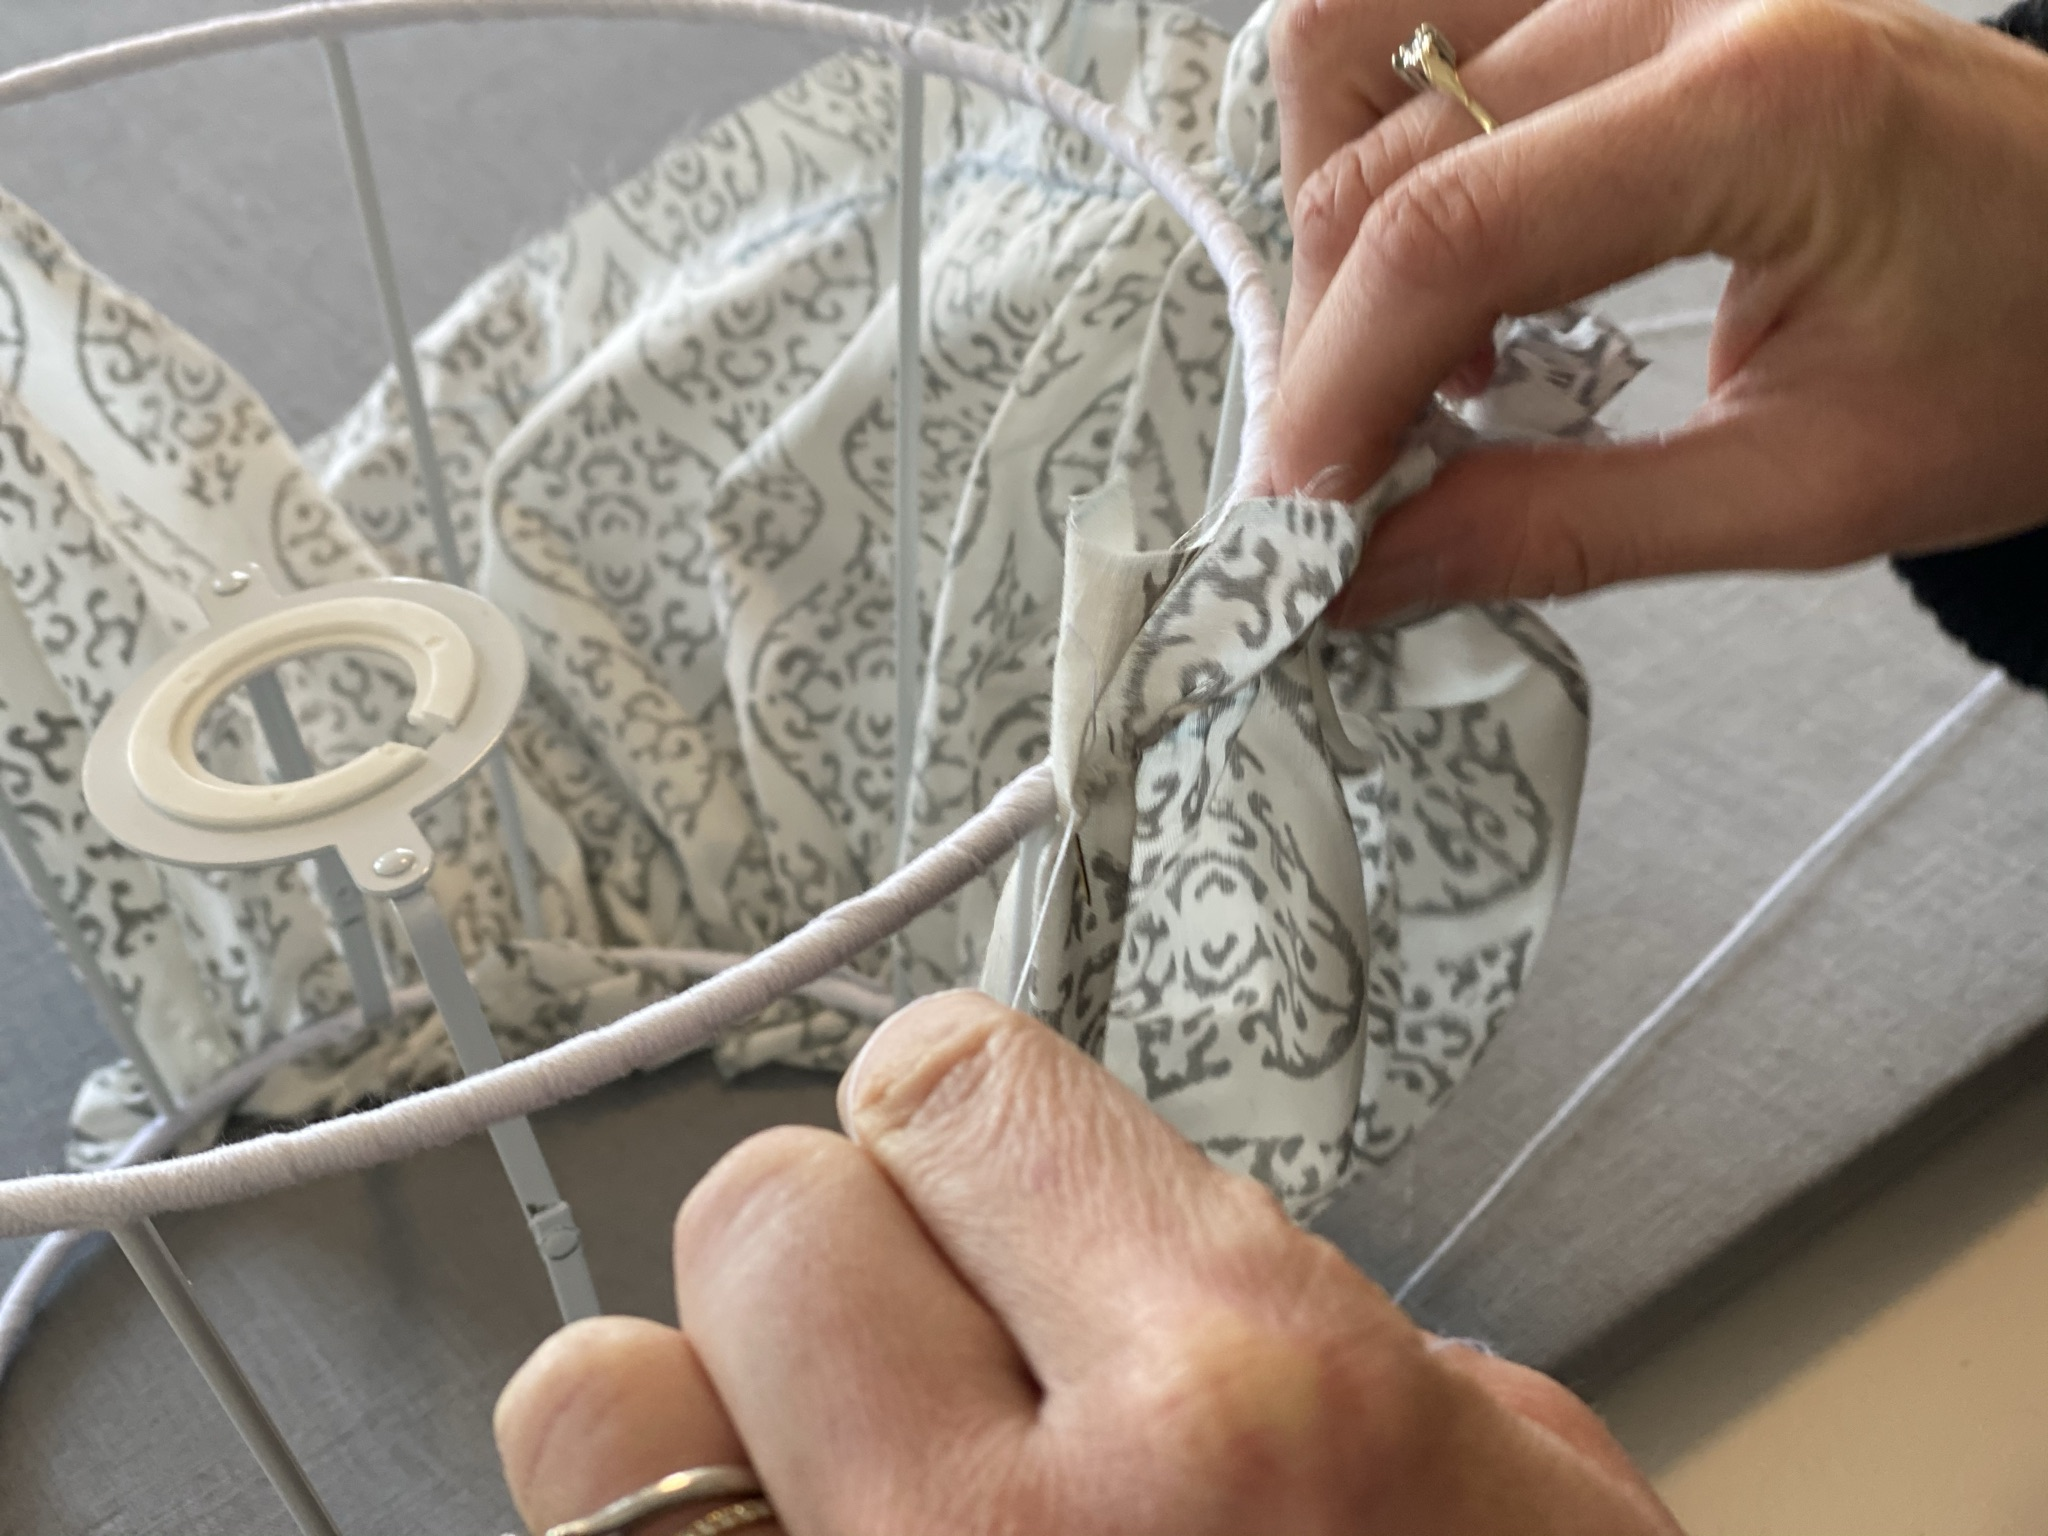 5 day lampshade making course